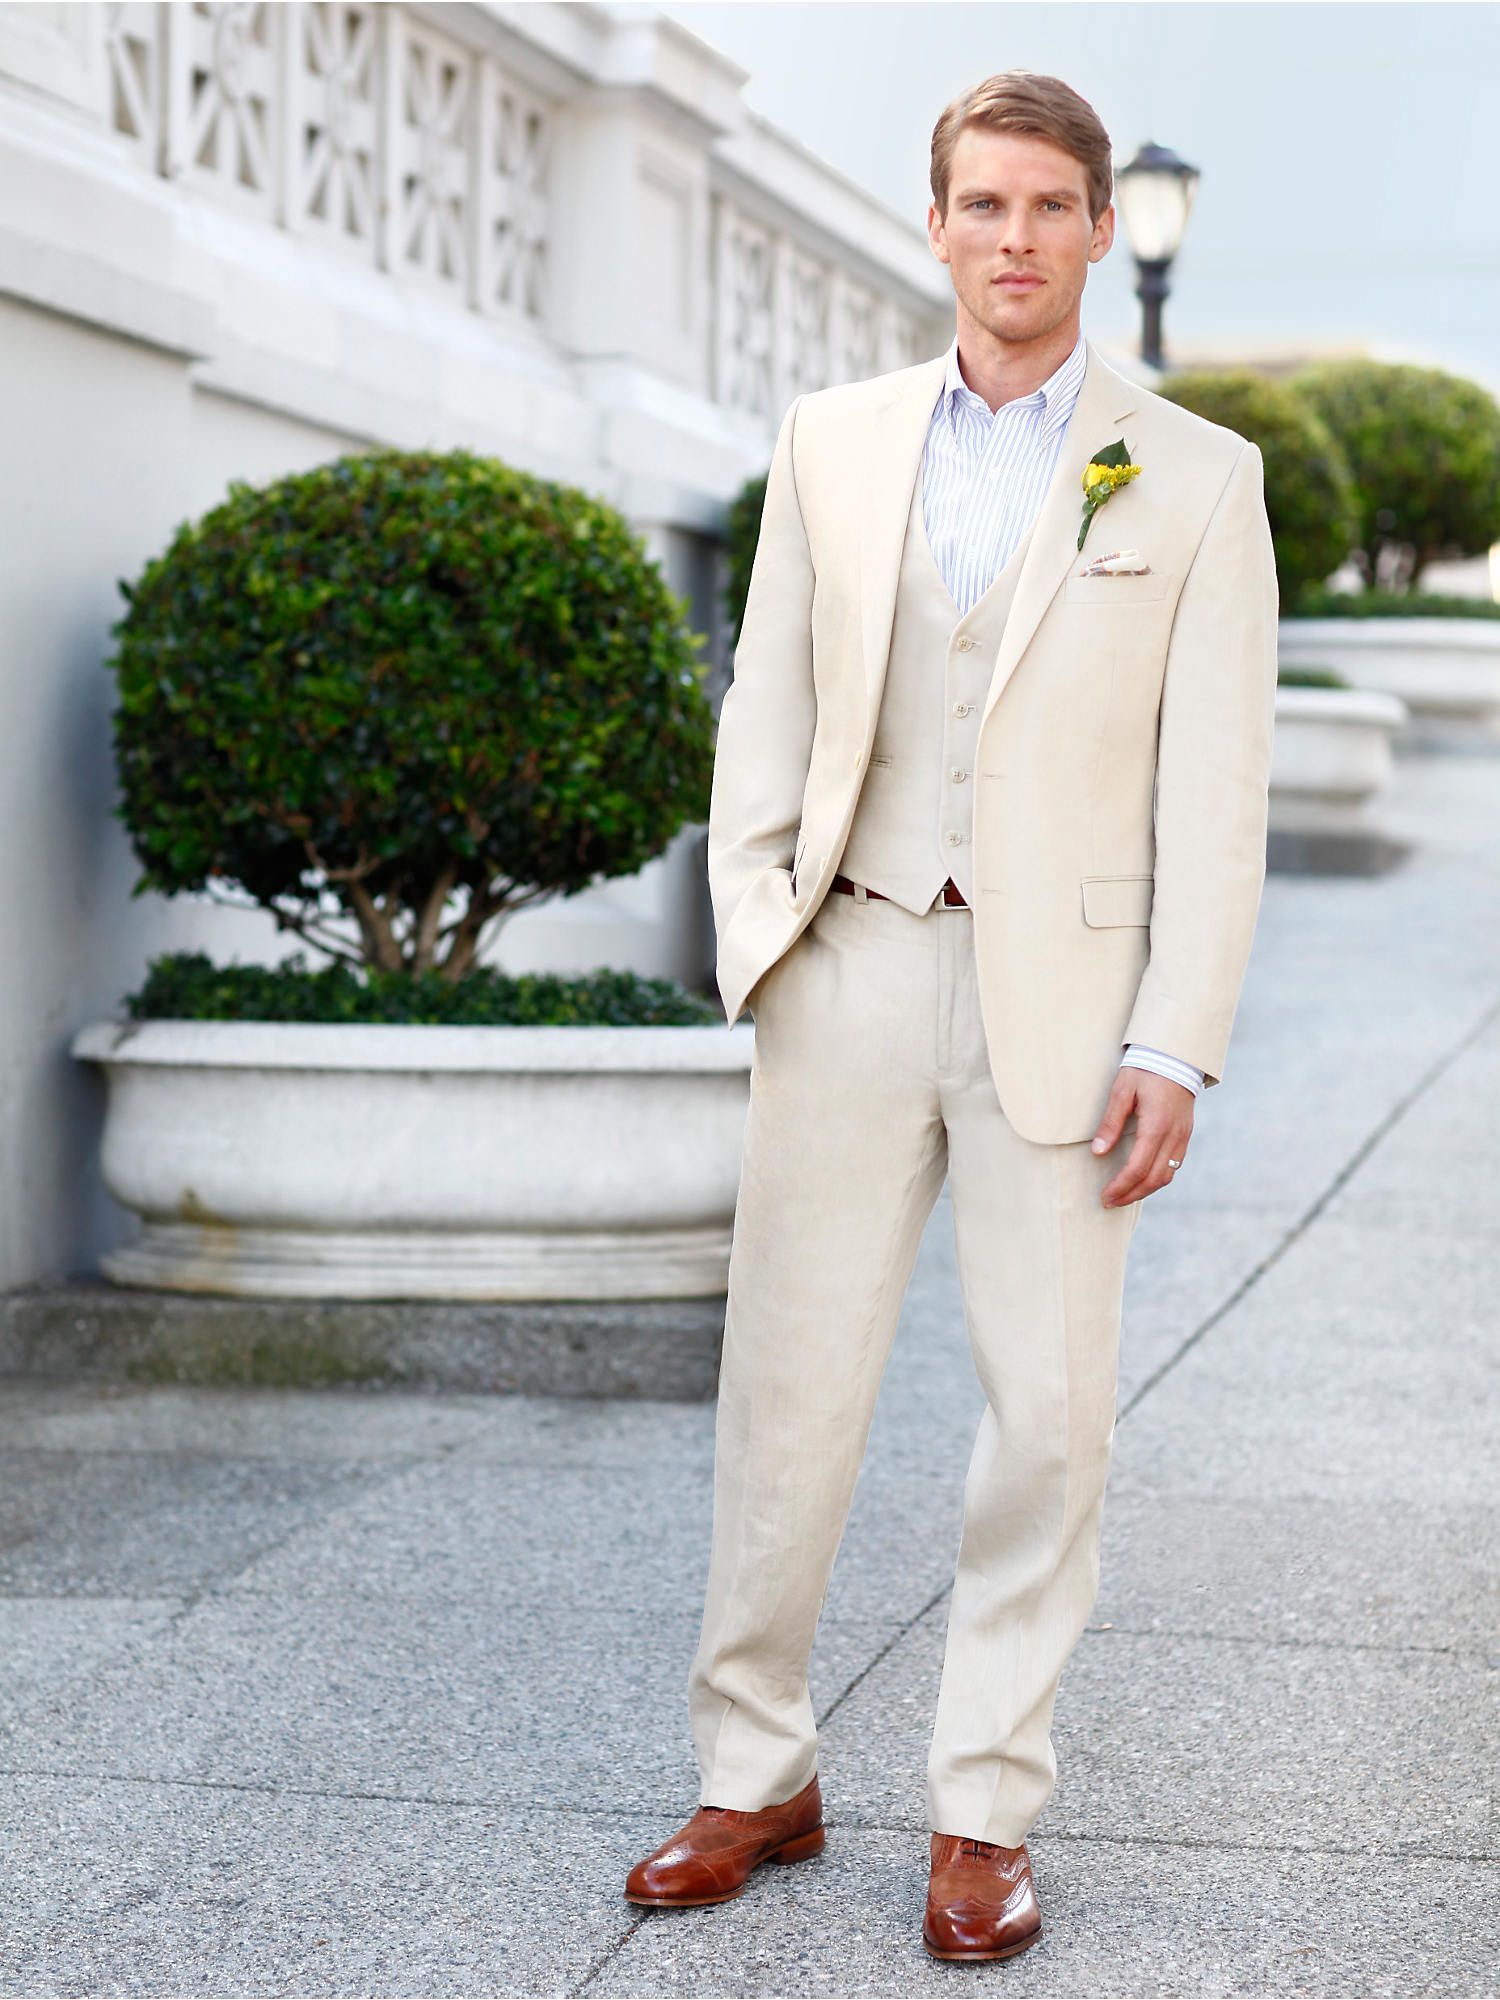 Wedding Party Linen Suit | Men\'s Wearhouse | M+J | Pinterest ...